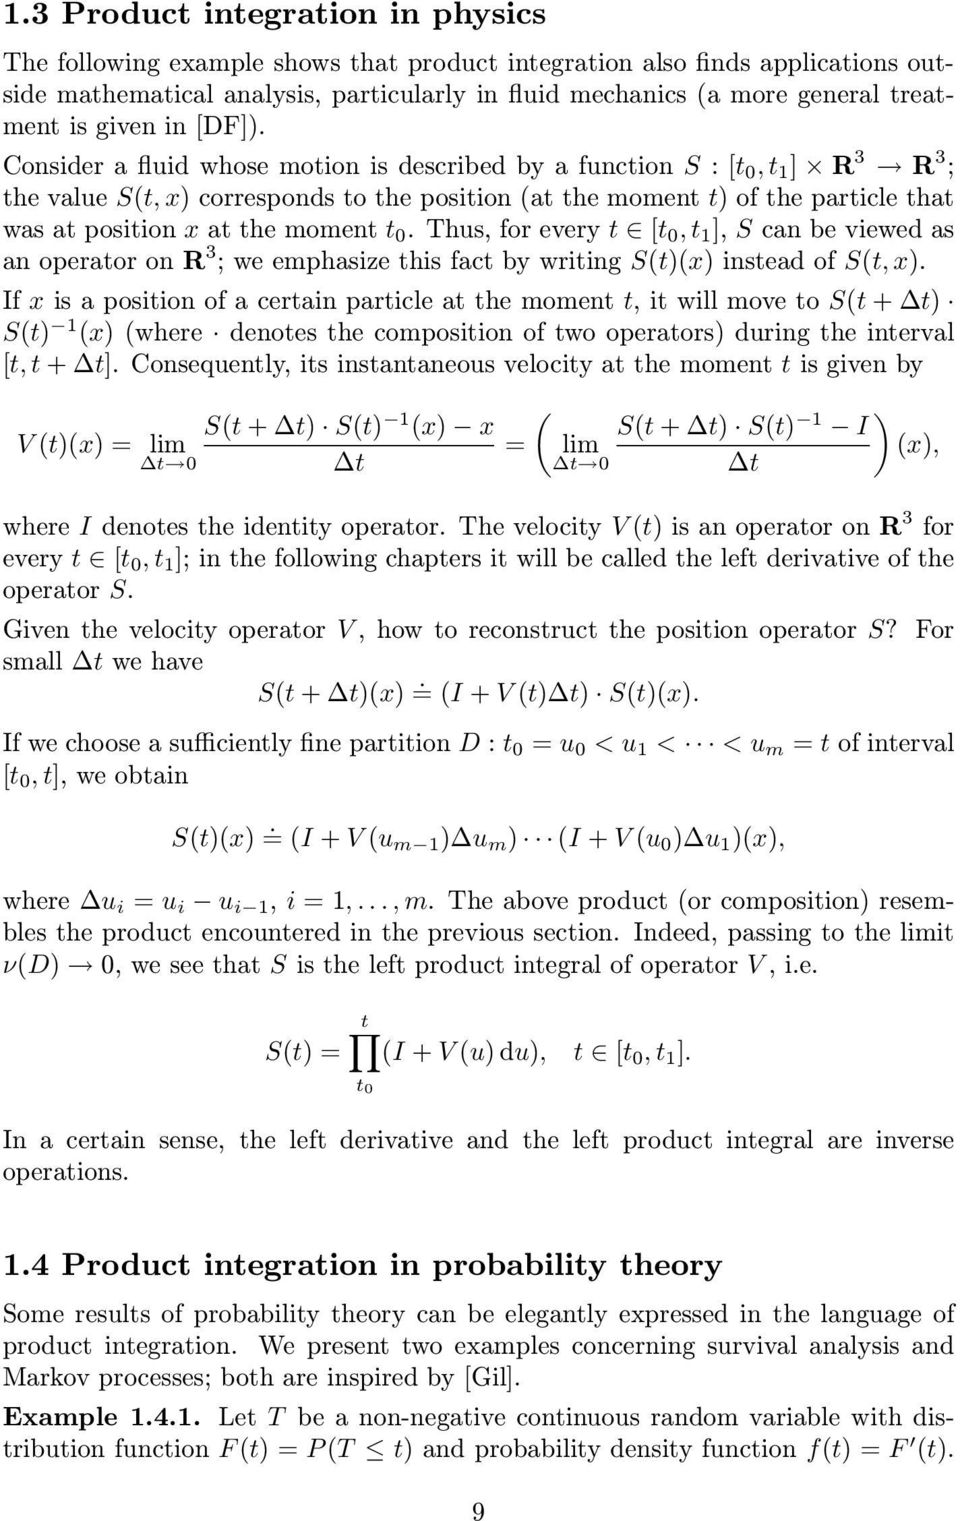 Thus, for every t [t 0, t 1 ], S cn be viewed s n opertor on R 3 ; we emphsize this fct by writing S(t)(x) insted of S(t, x).